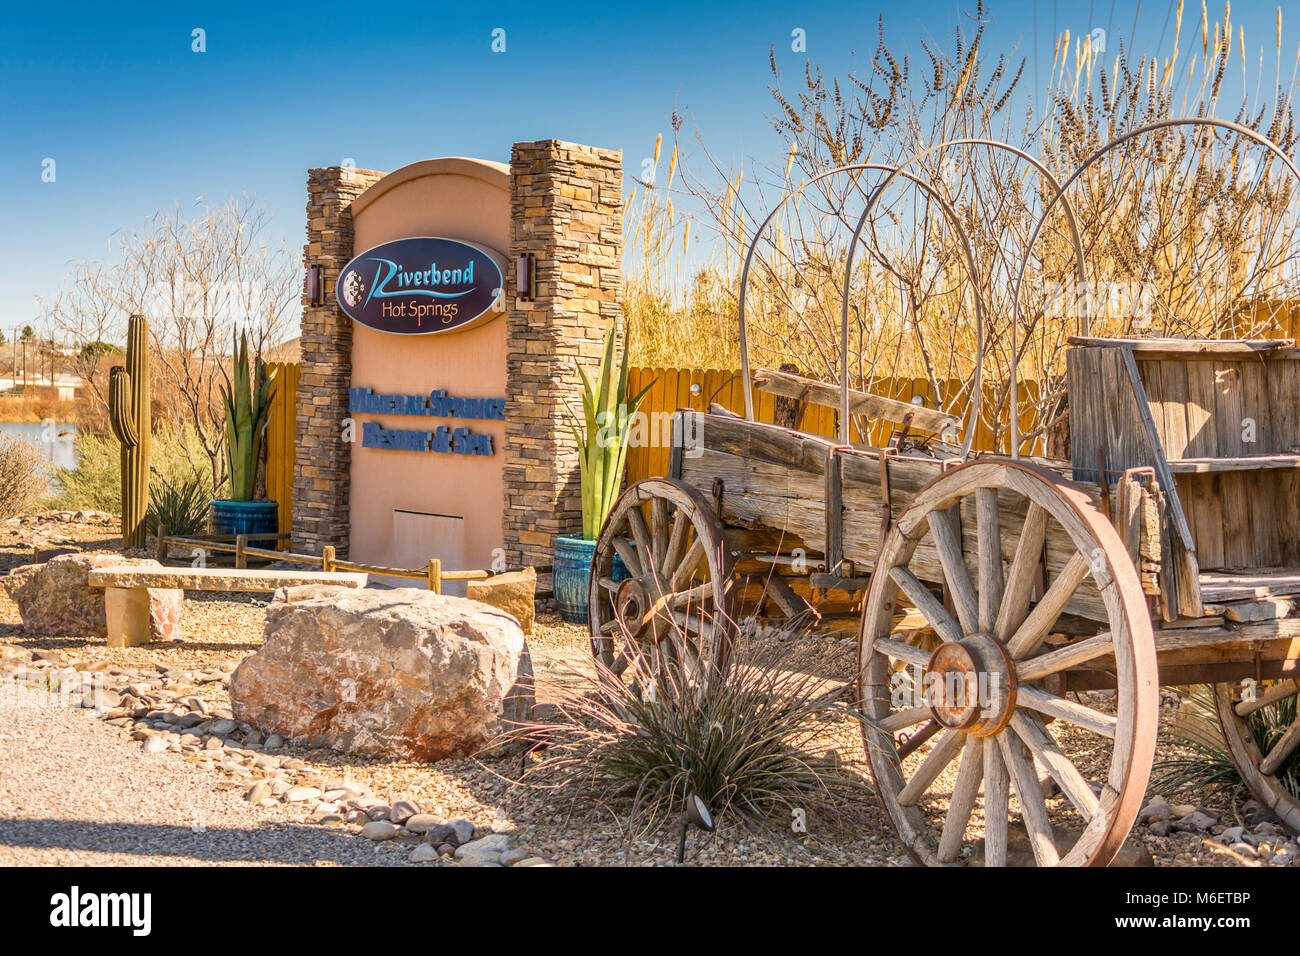 Riverbend Hot Springs, Mineral Springs Resort and Spa located on the Rio Grande River  in Truth or Consequences - Stock Image